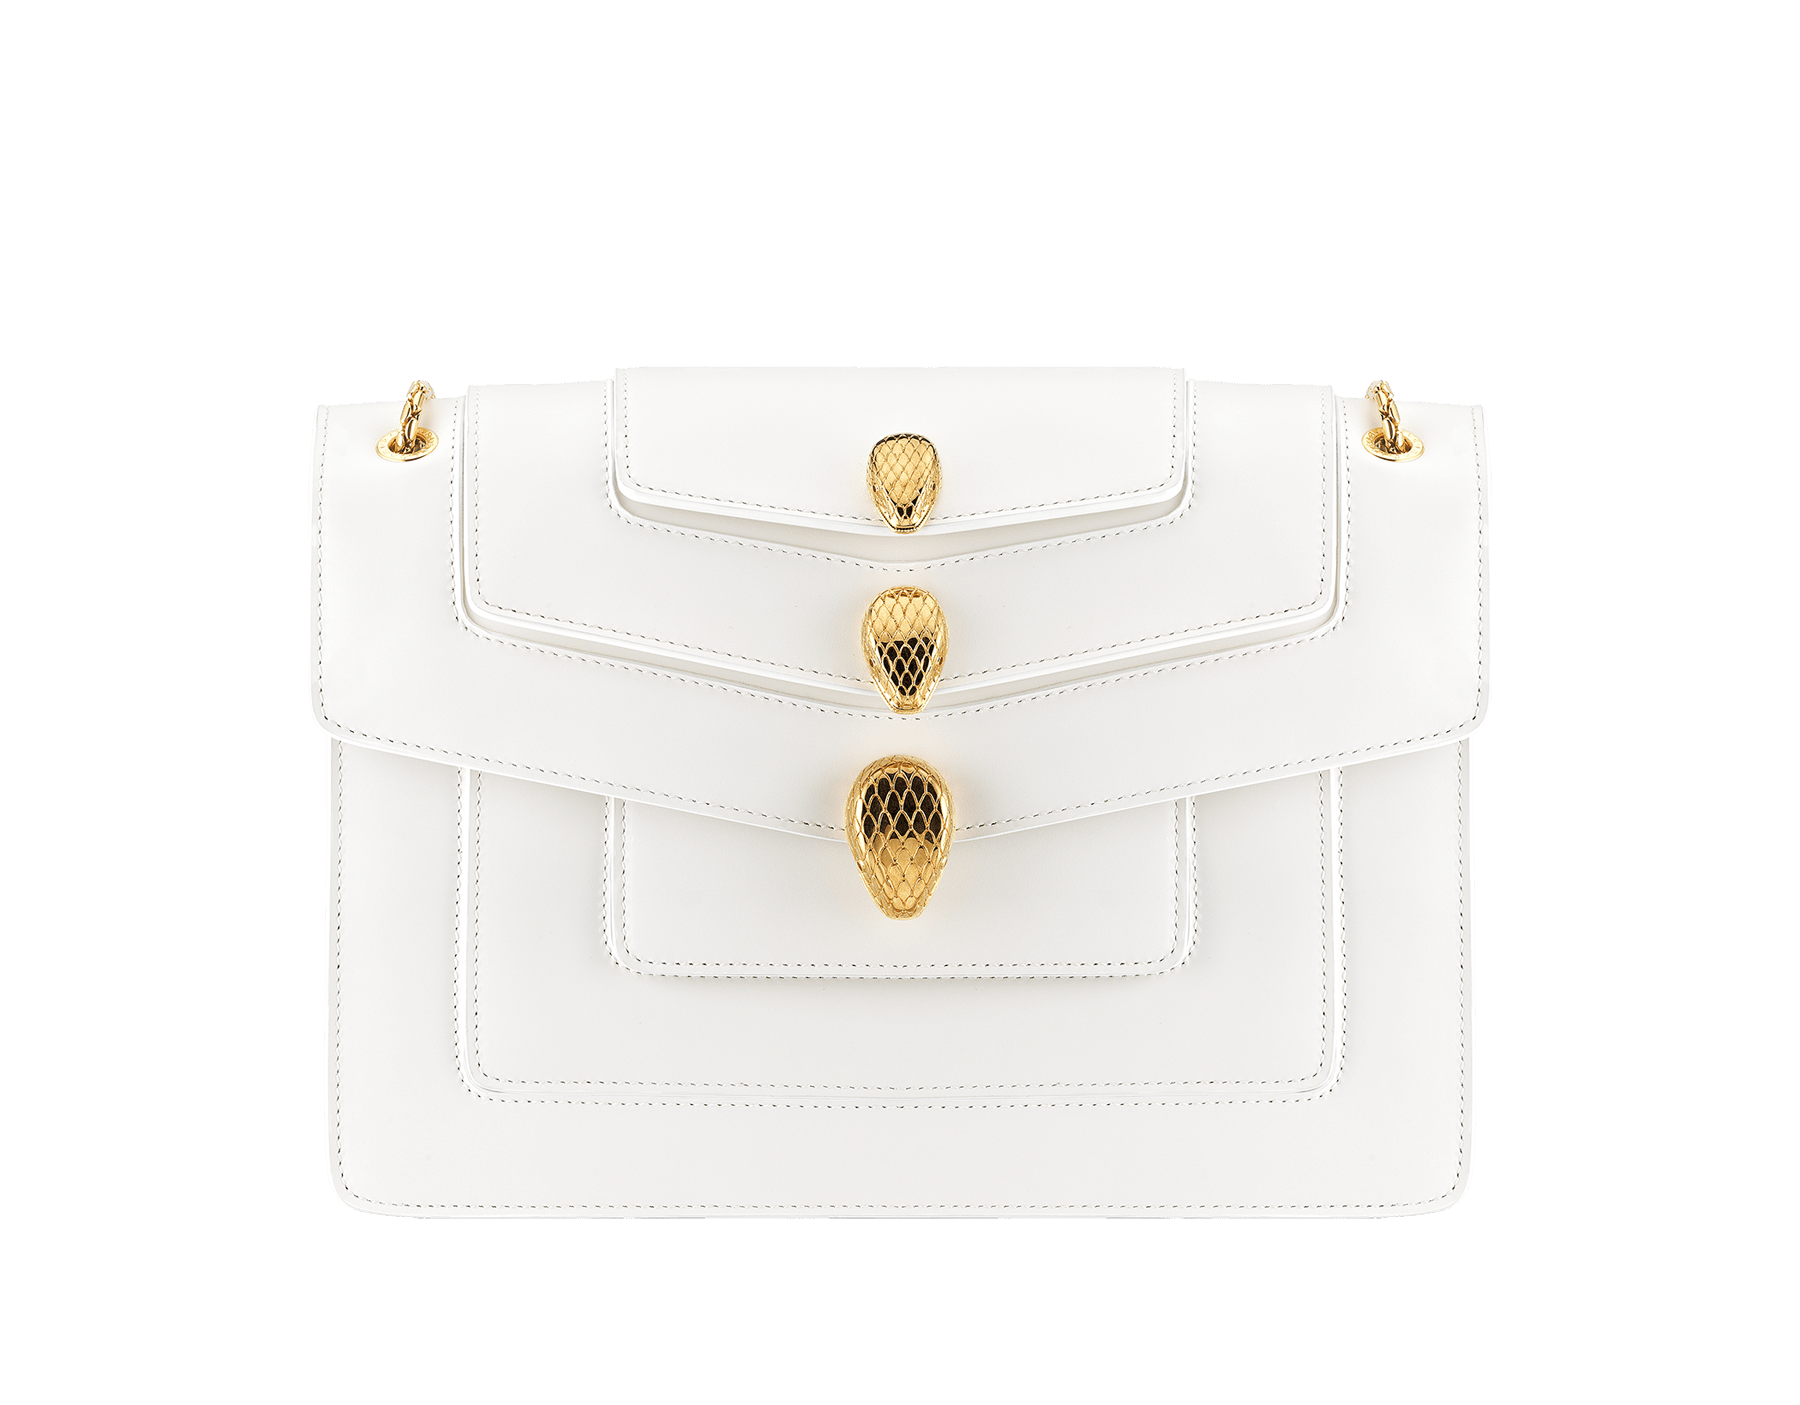 Alexander Wang x Bvlgari Triplette shoulder bag in smooth white calf leather. New triple Serpenti head closure in antique gold plated brass with tempting red enamel eyes. Limited edition. 288744 image 1